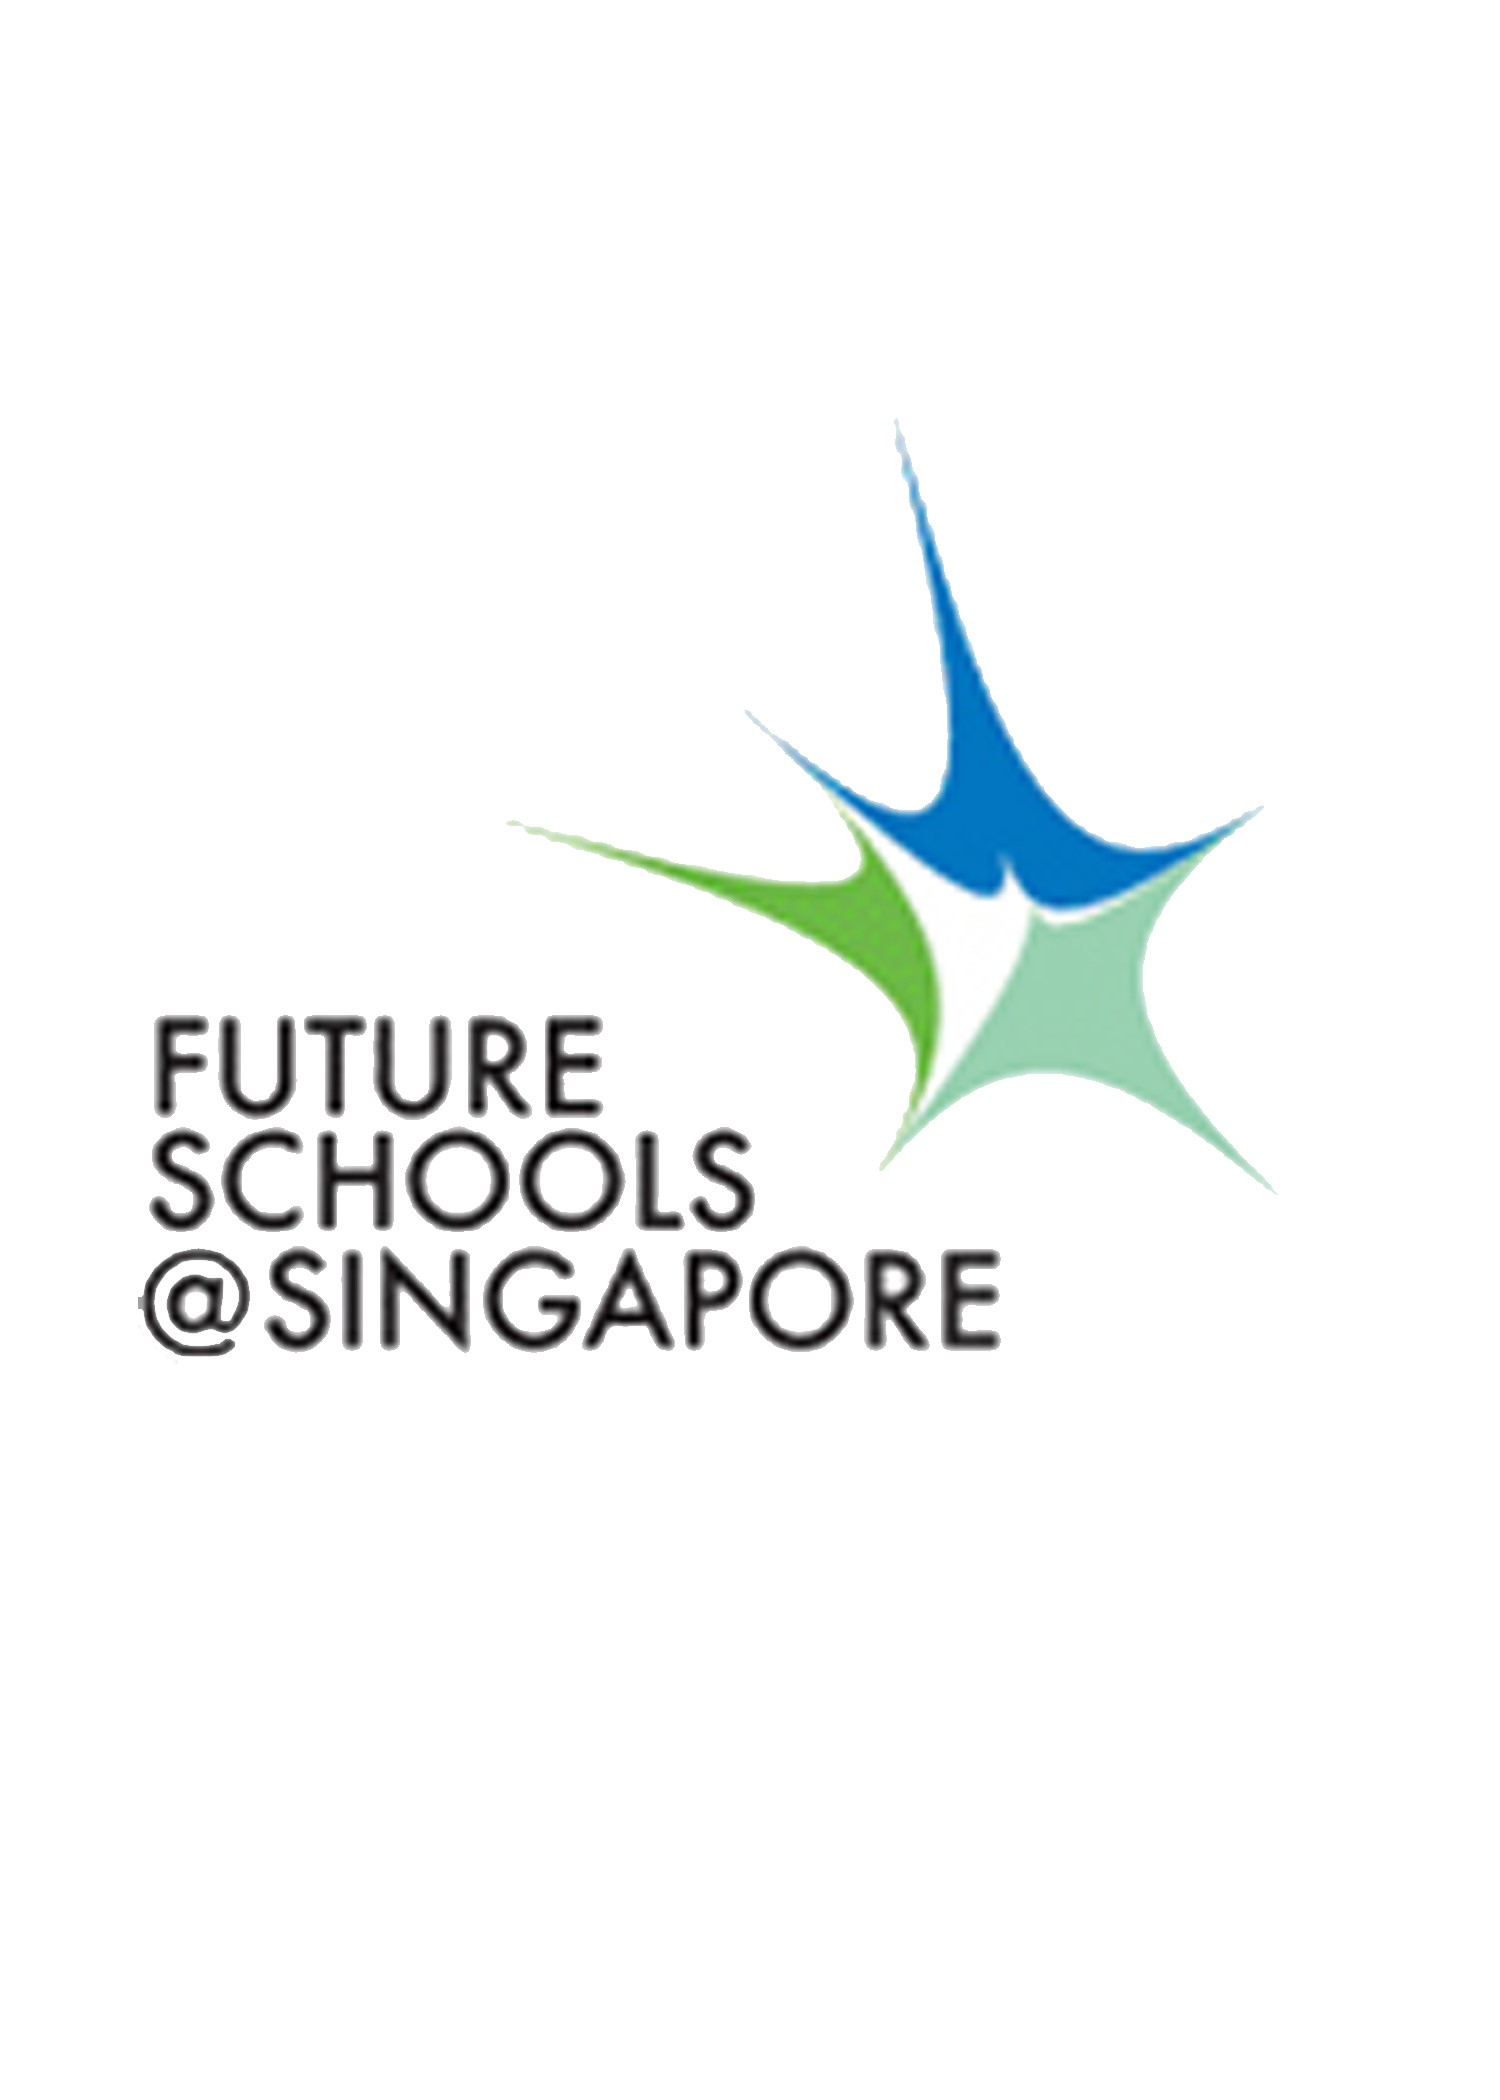 Official logo of the Future Schools @Singapore programme.